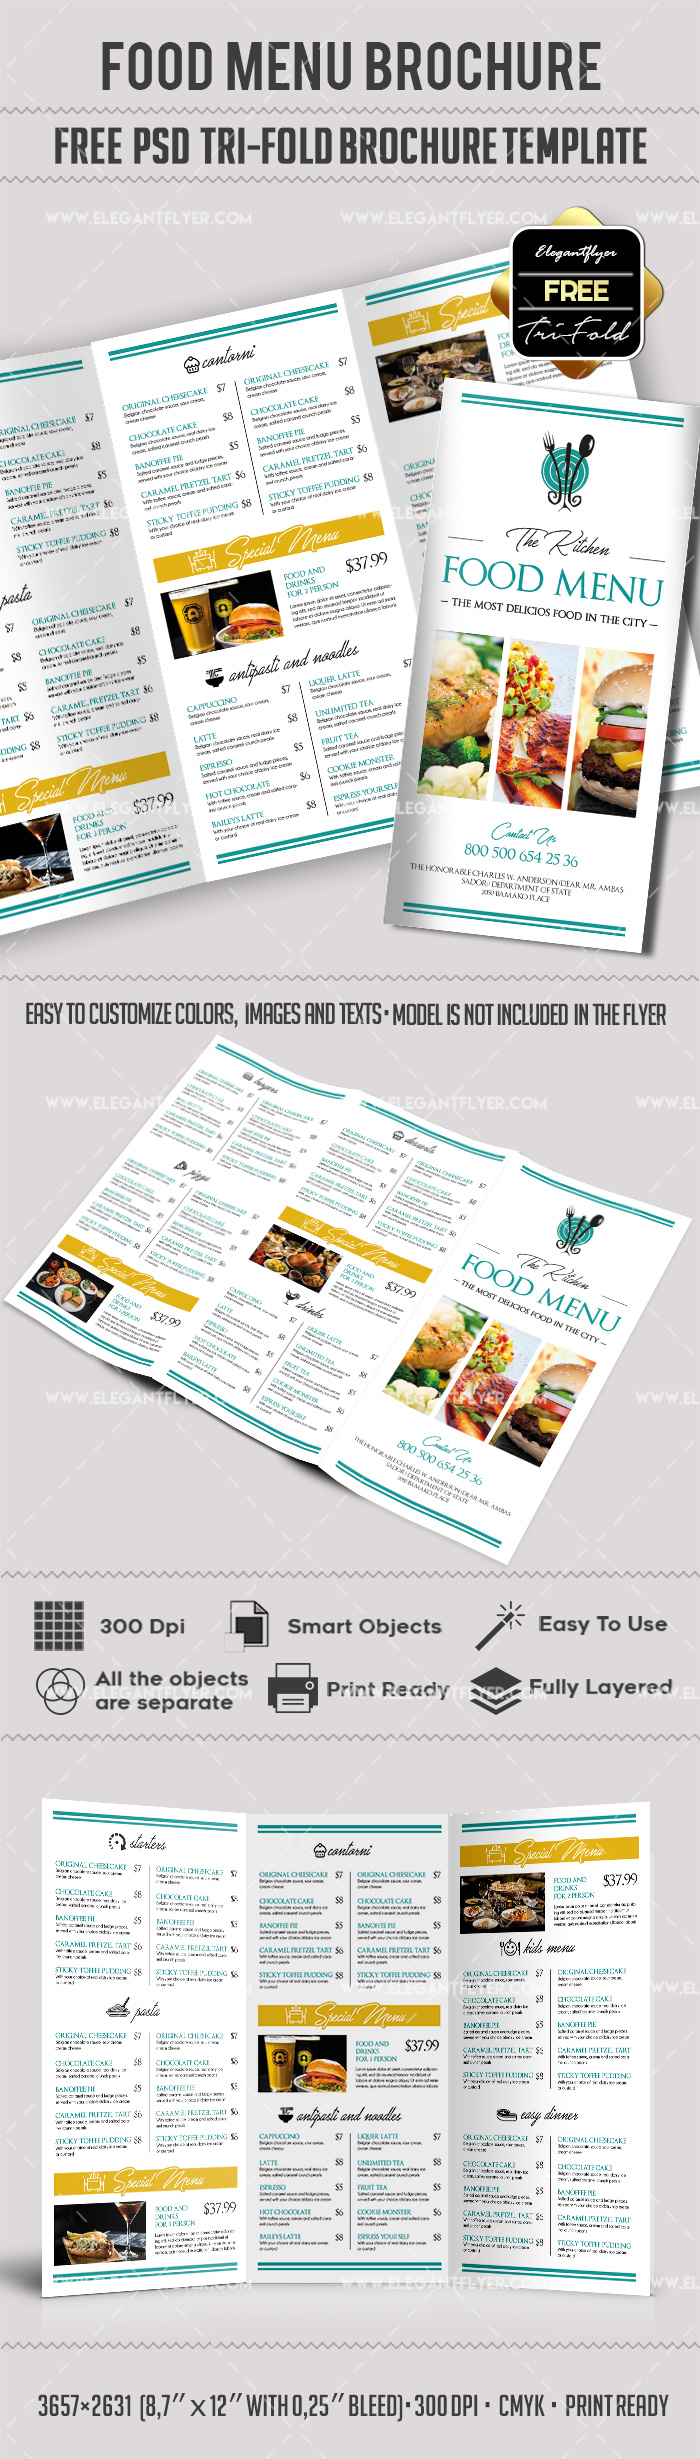 Free food menu tri fold psd brochure template by for Free food brochure templates